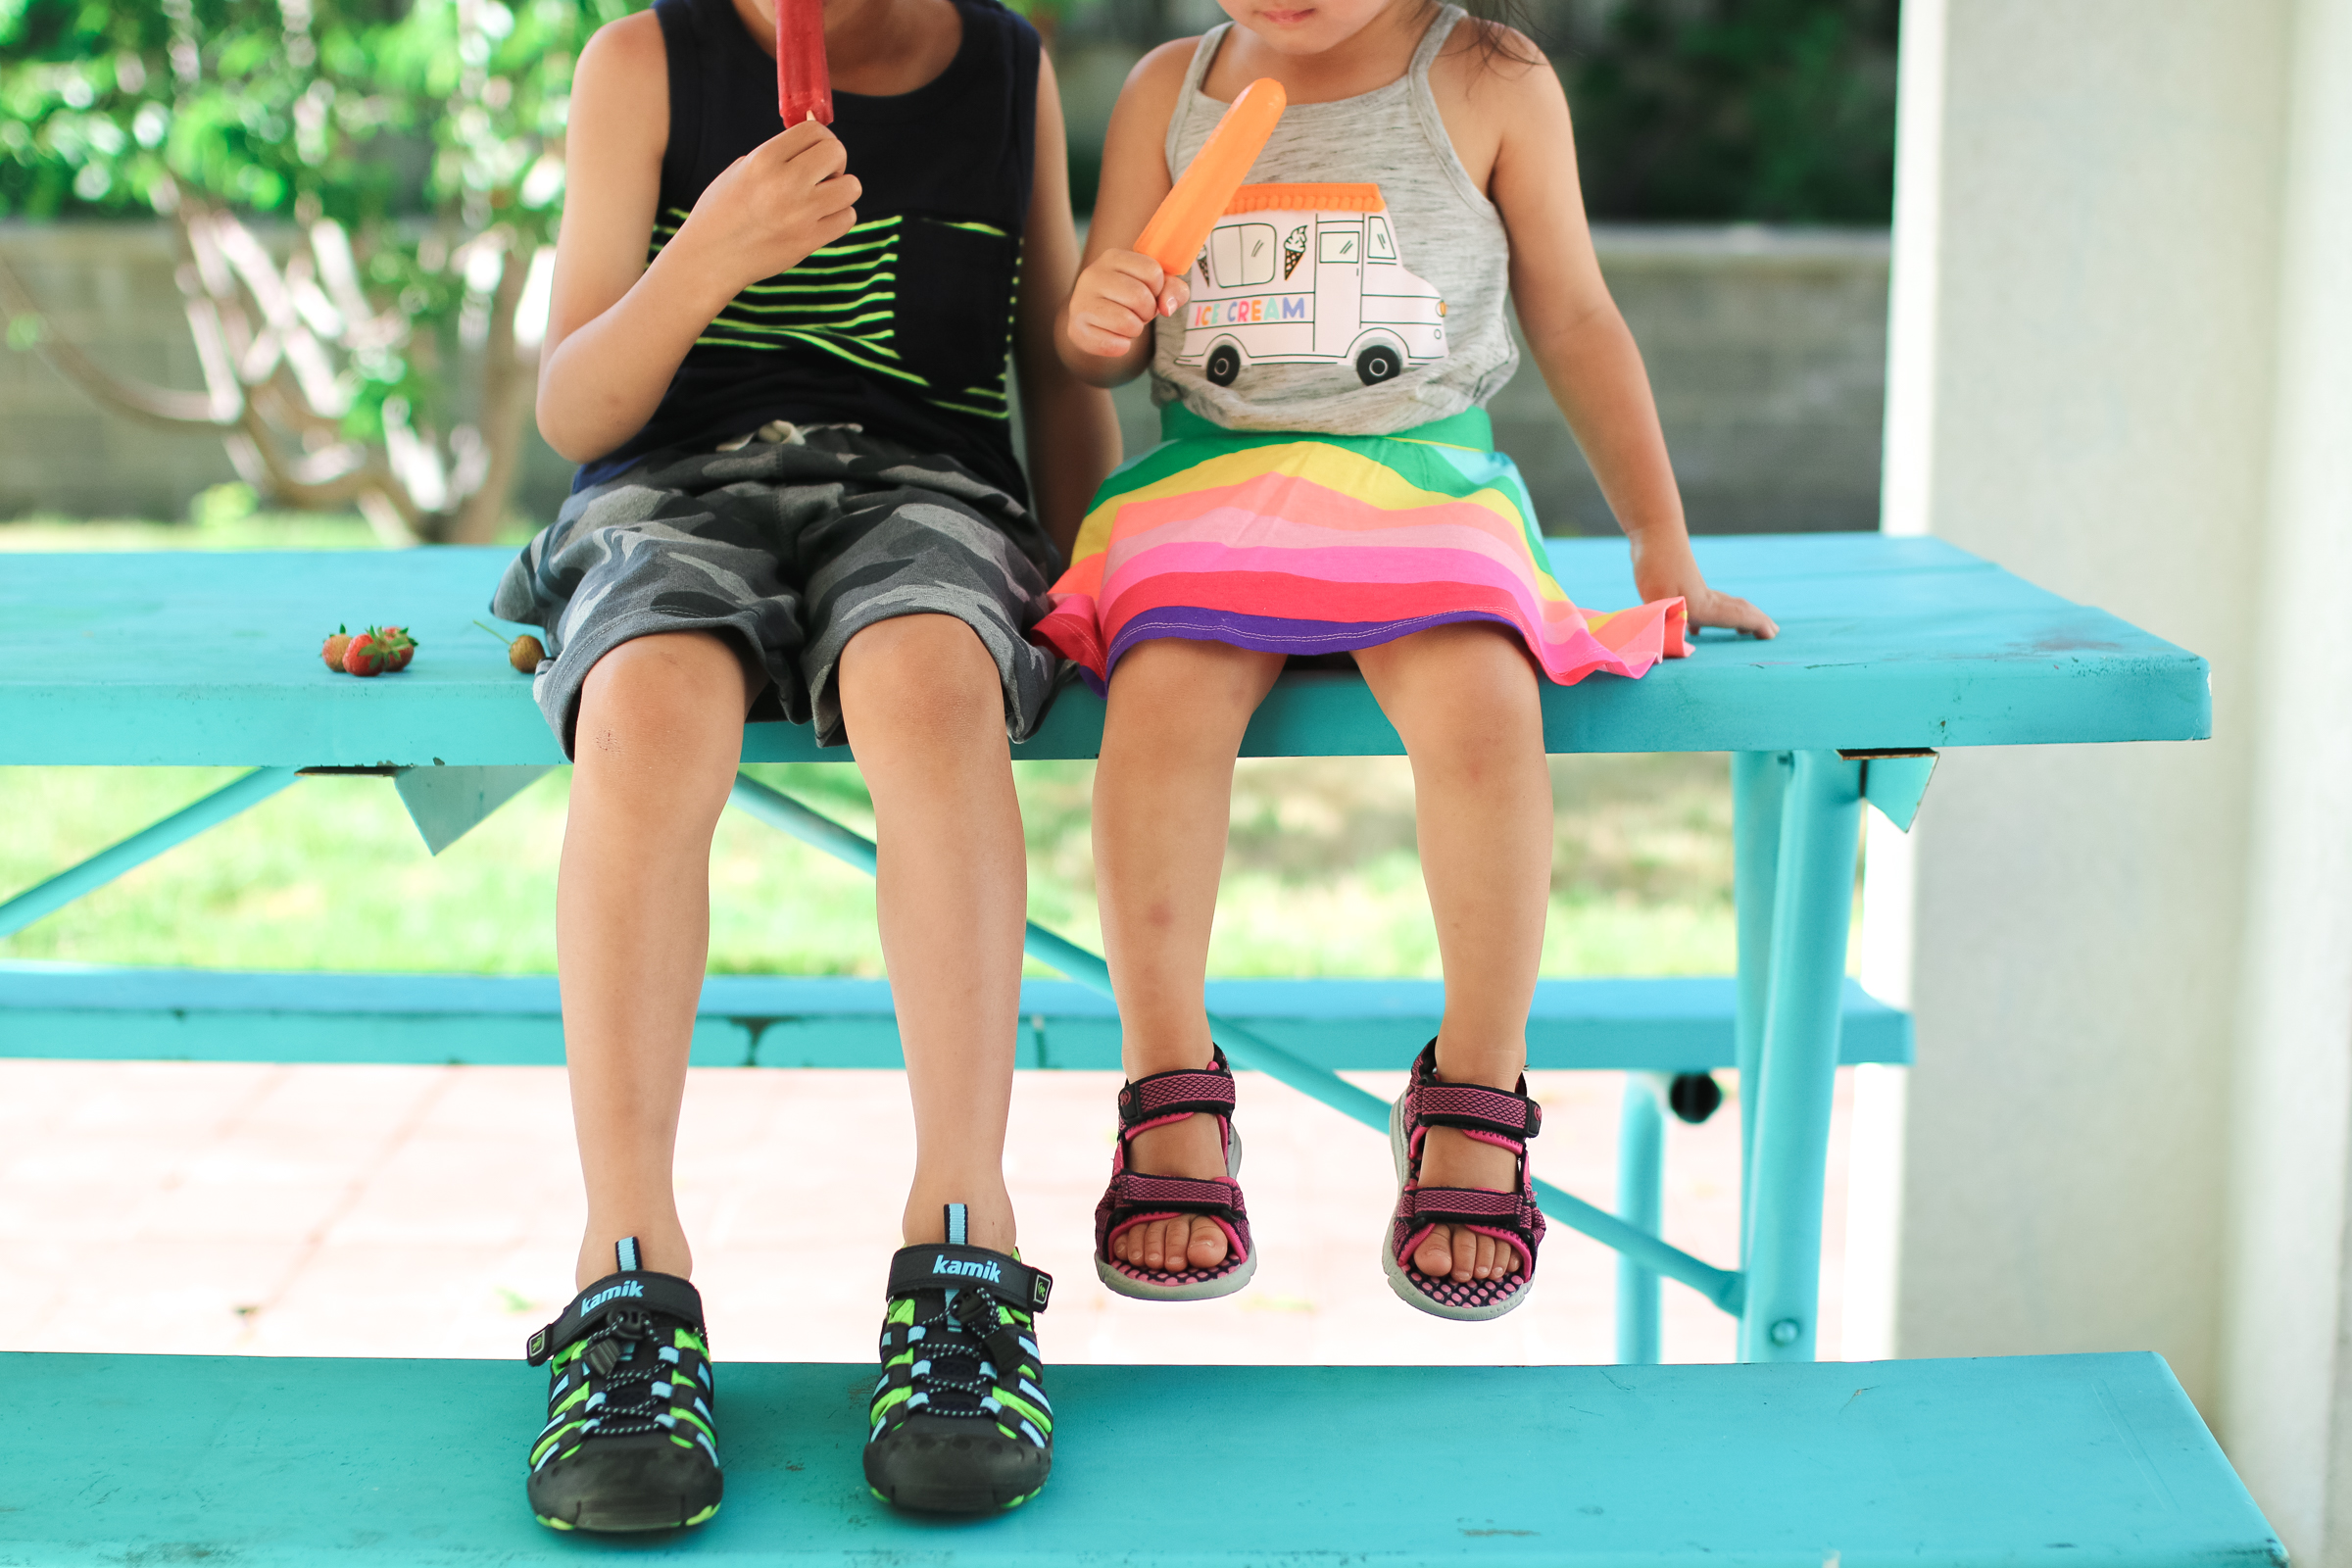 Sport Sandals for Active Boys and Girls by Utah fashion blogger Sandy A La Mode